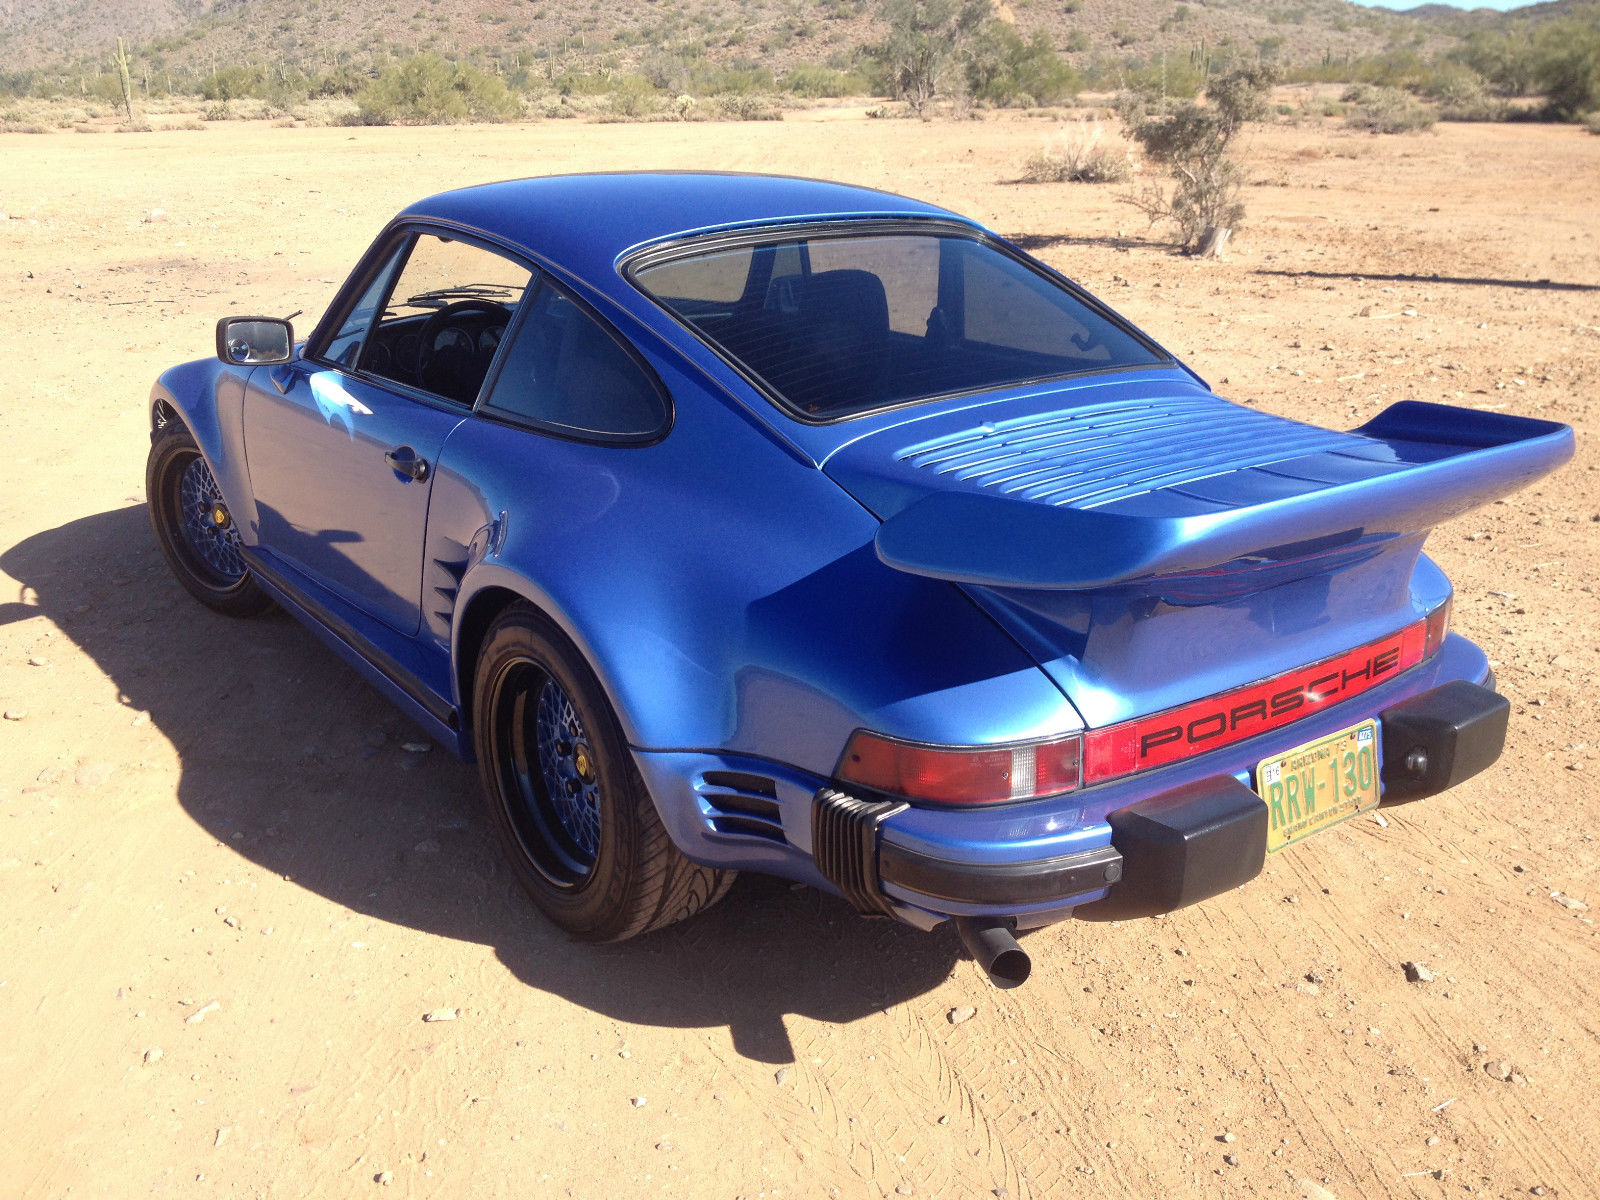 nice 1975 porsche 911s with slant nose 930 conversion for sale in phoenix arizona united states. Black Bedroom Furniture Sets. Home Design Ideas